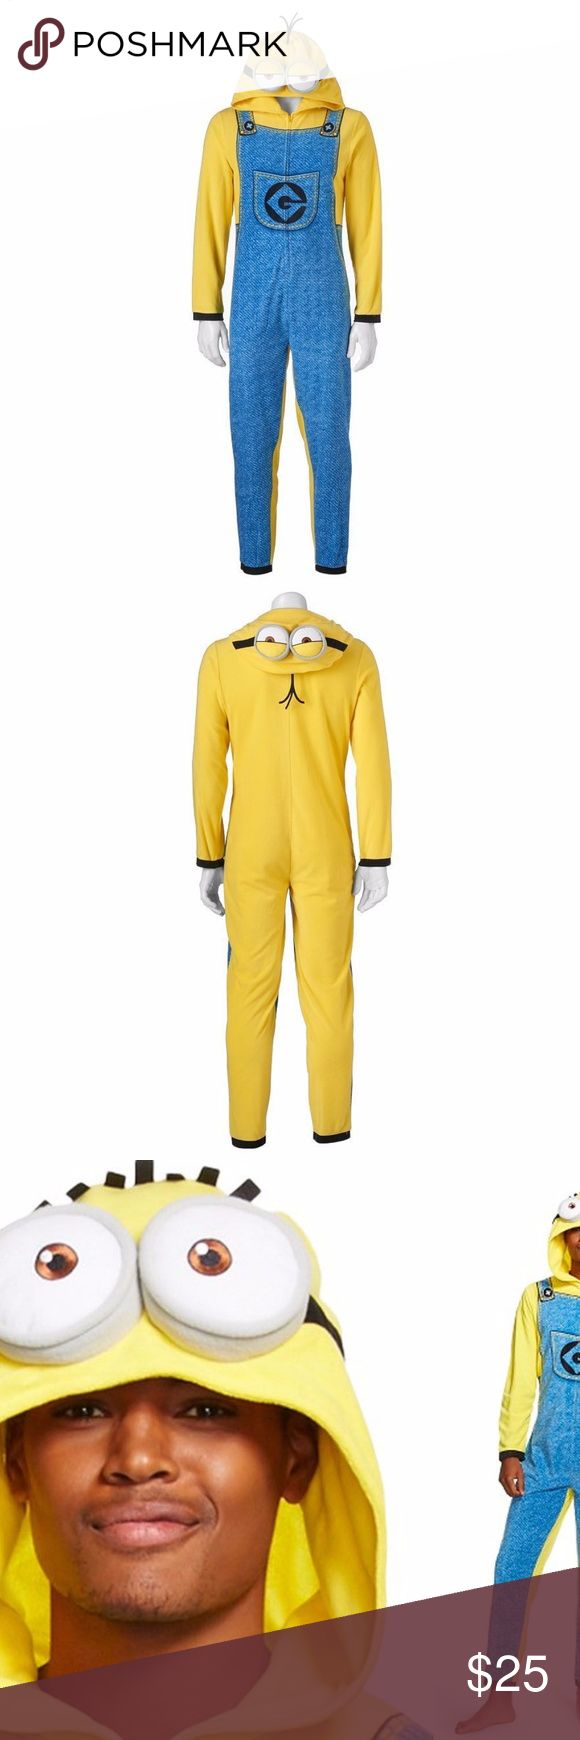 Adult Men Hooded Minion Fleece Pajamas Union Suit These men's Despicable Me Minion one piece hooded union suit pajamas are available in adult men's size L and XL. Comfy and fun for pj's, and can double as a Halloween costume too! Other